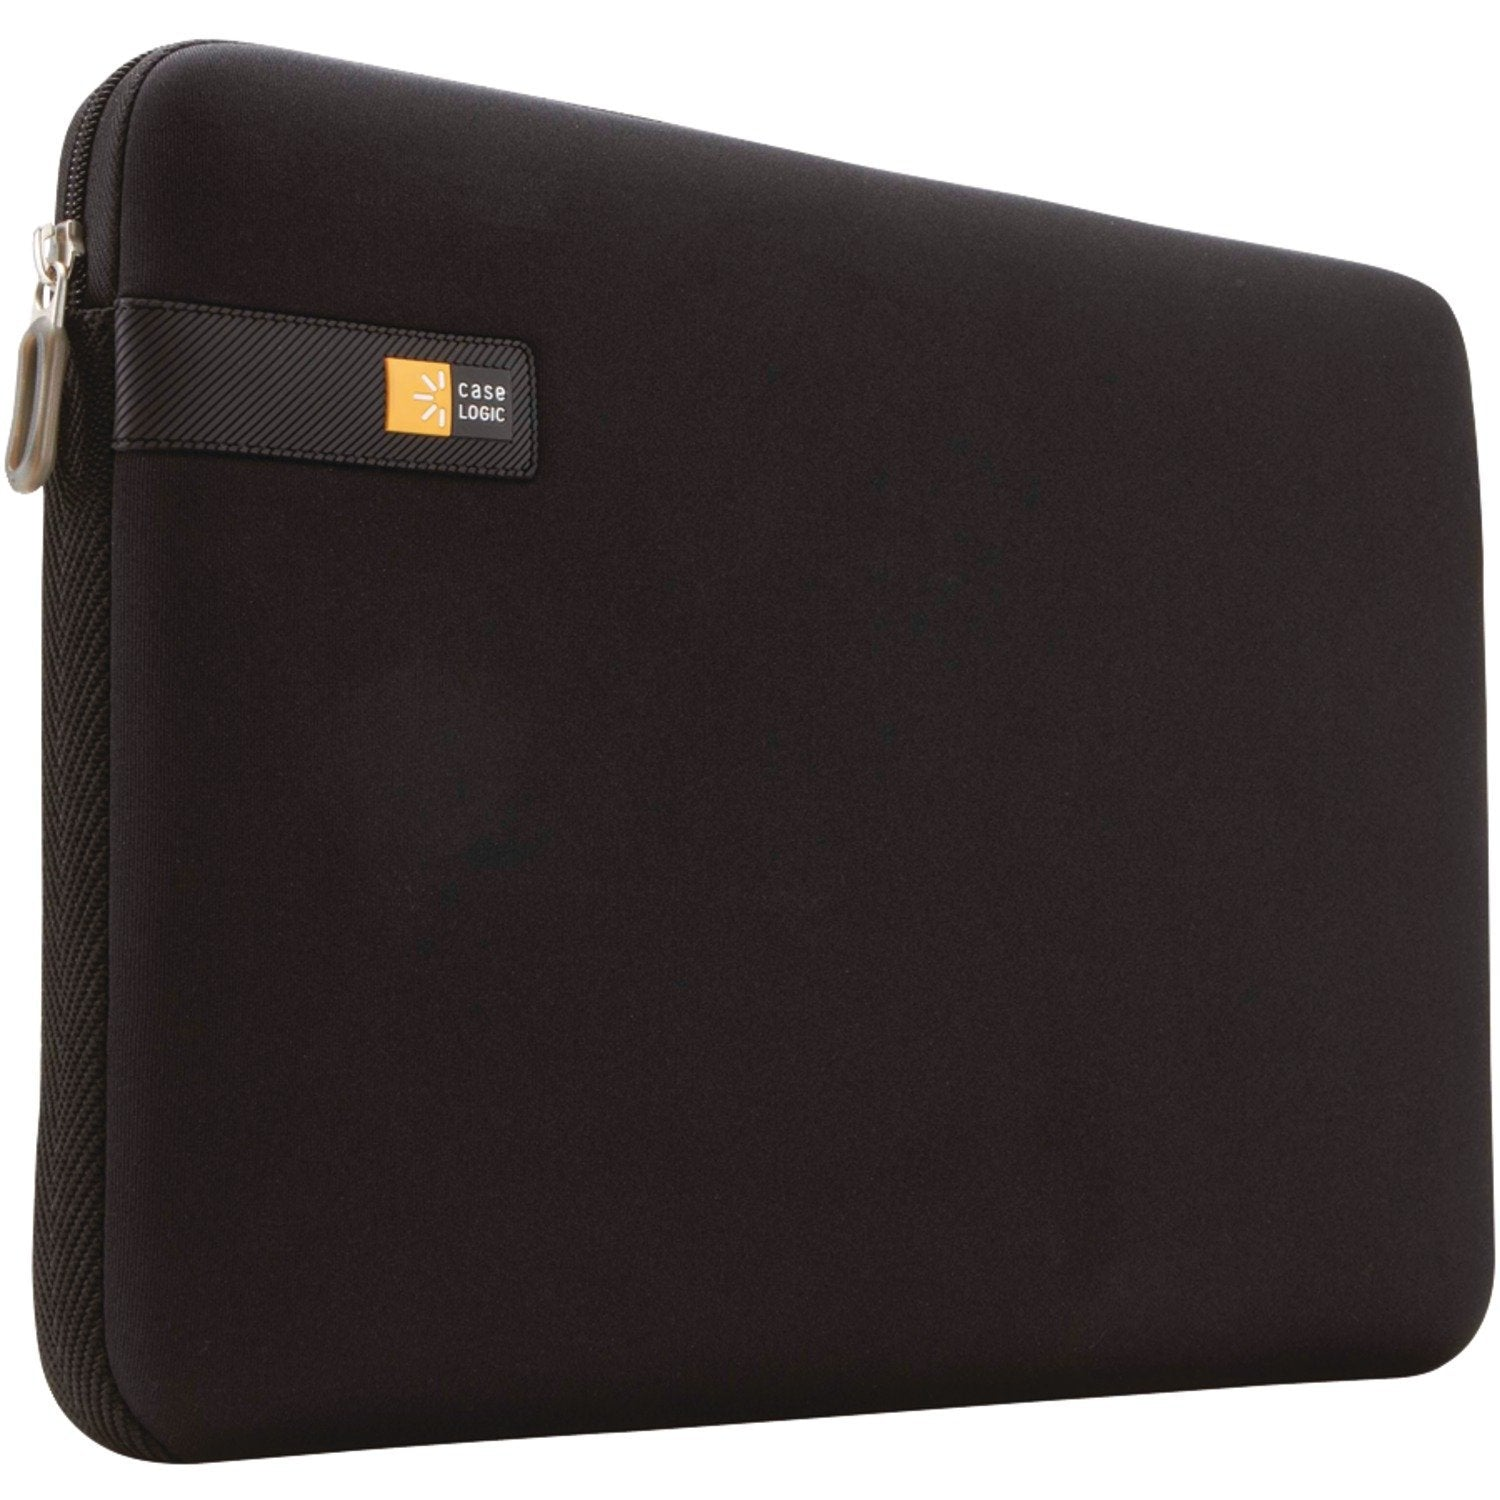 "Case Logic  11-11.6"" Laptop Sleeve Laps-111 Black"